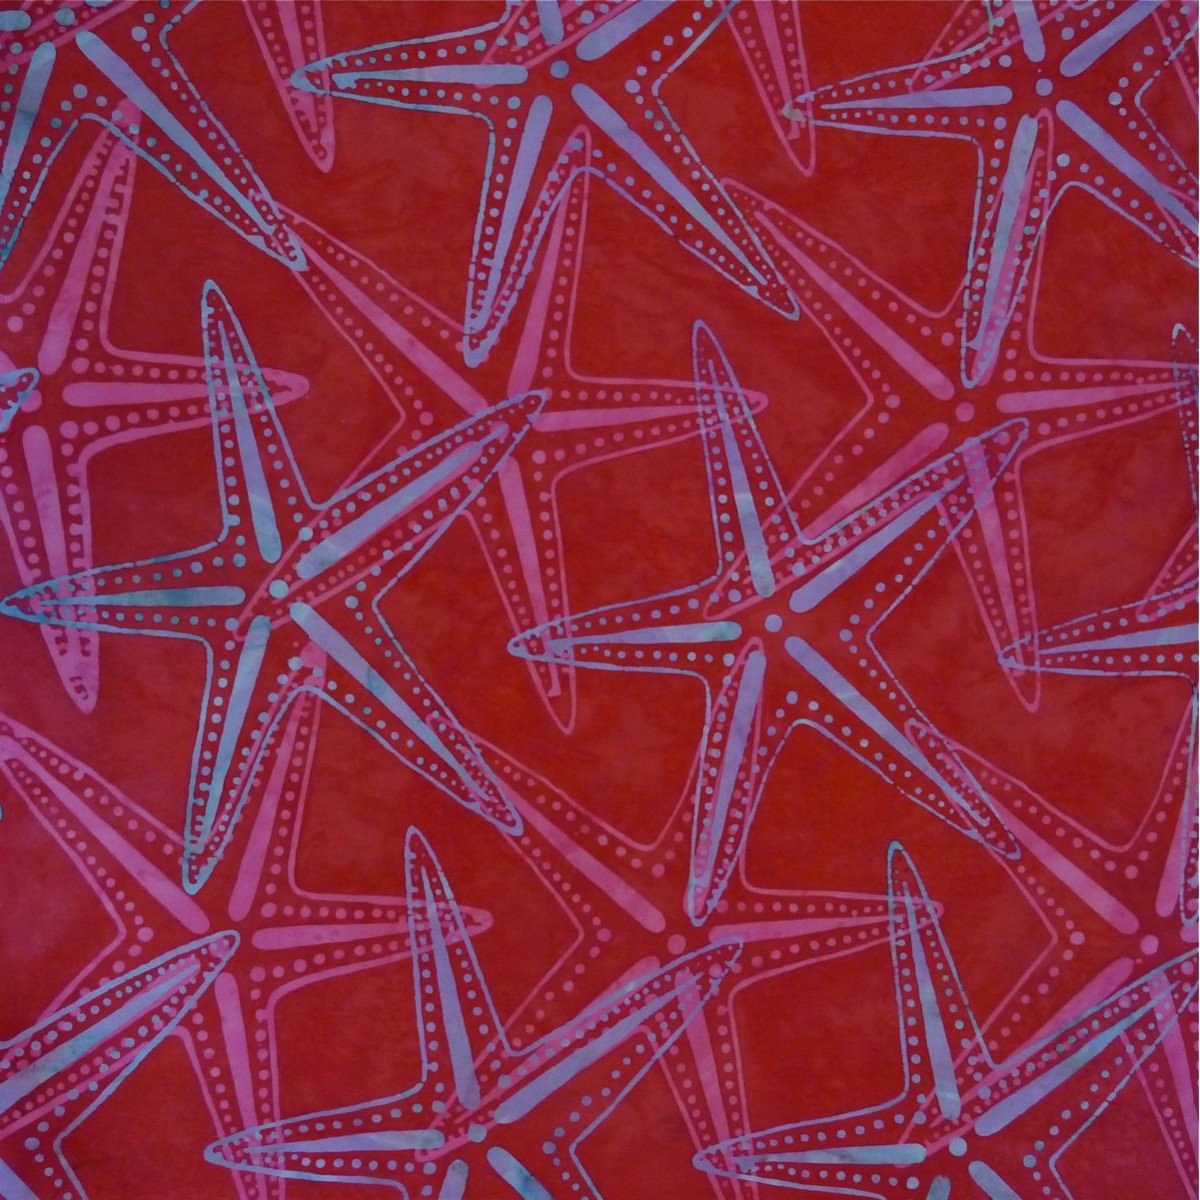 Batik by Mirah - Crystal Bay Coral Flower